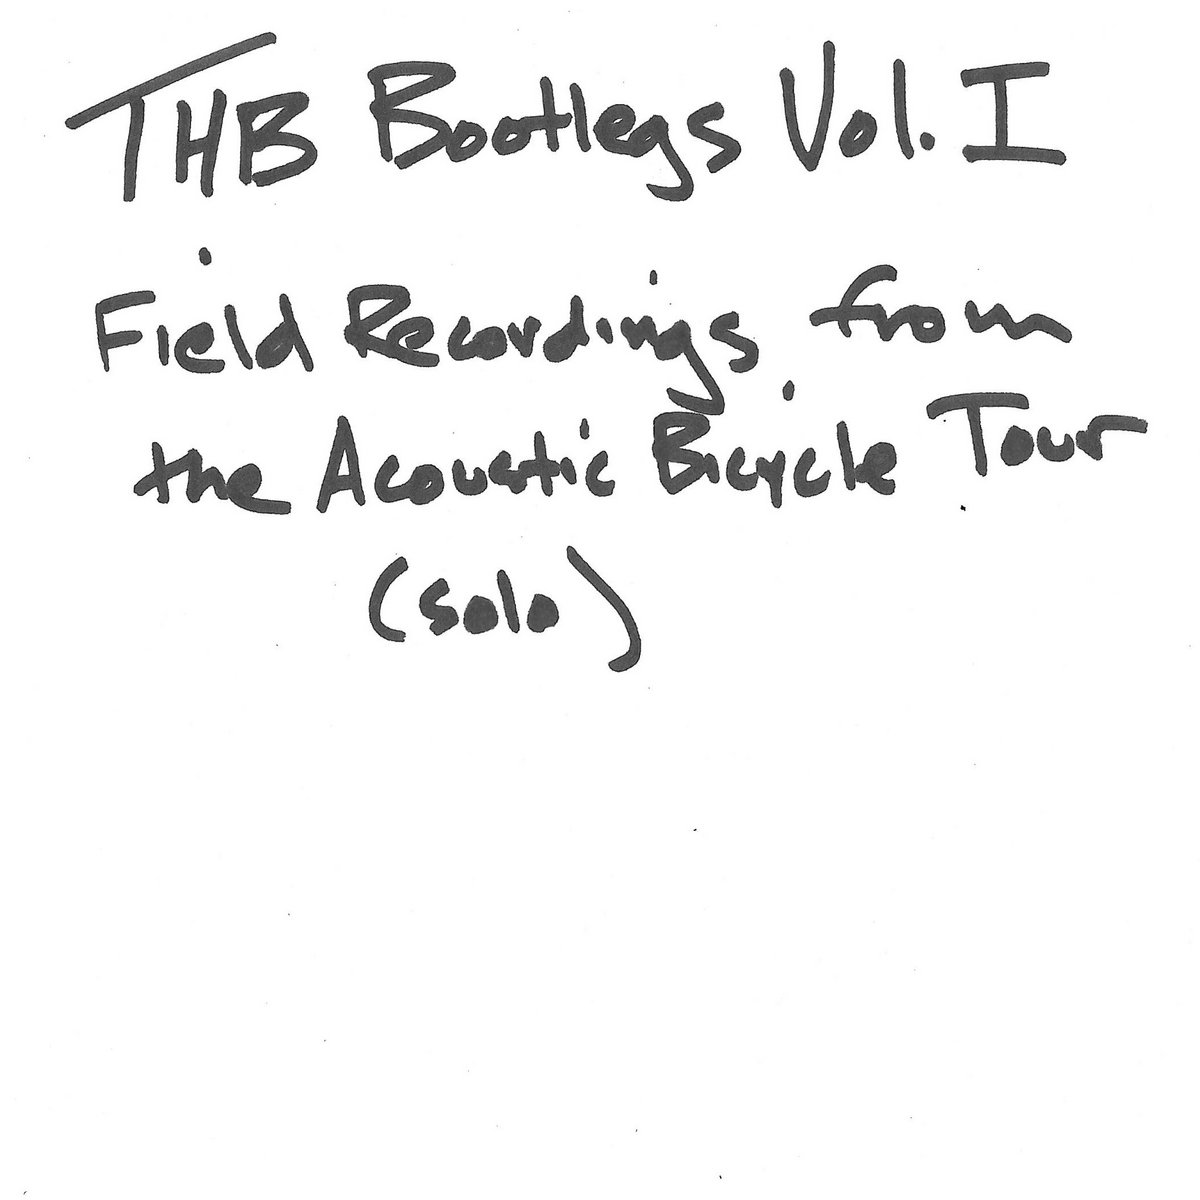 THB Bootlegs Volume One: Field Recording from the Acoustic